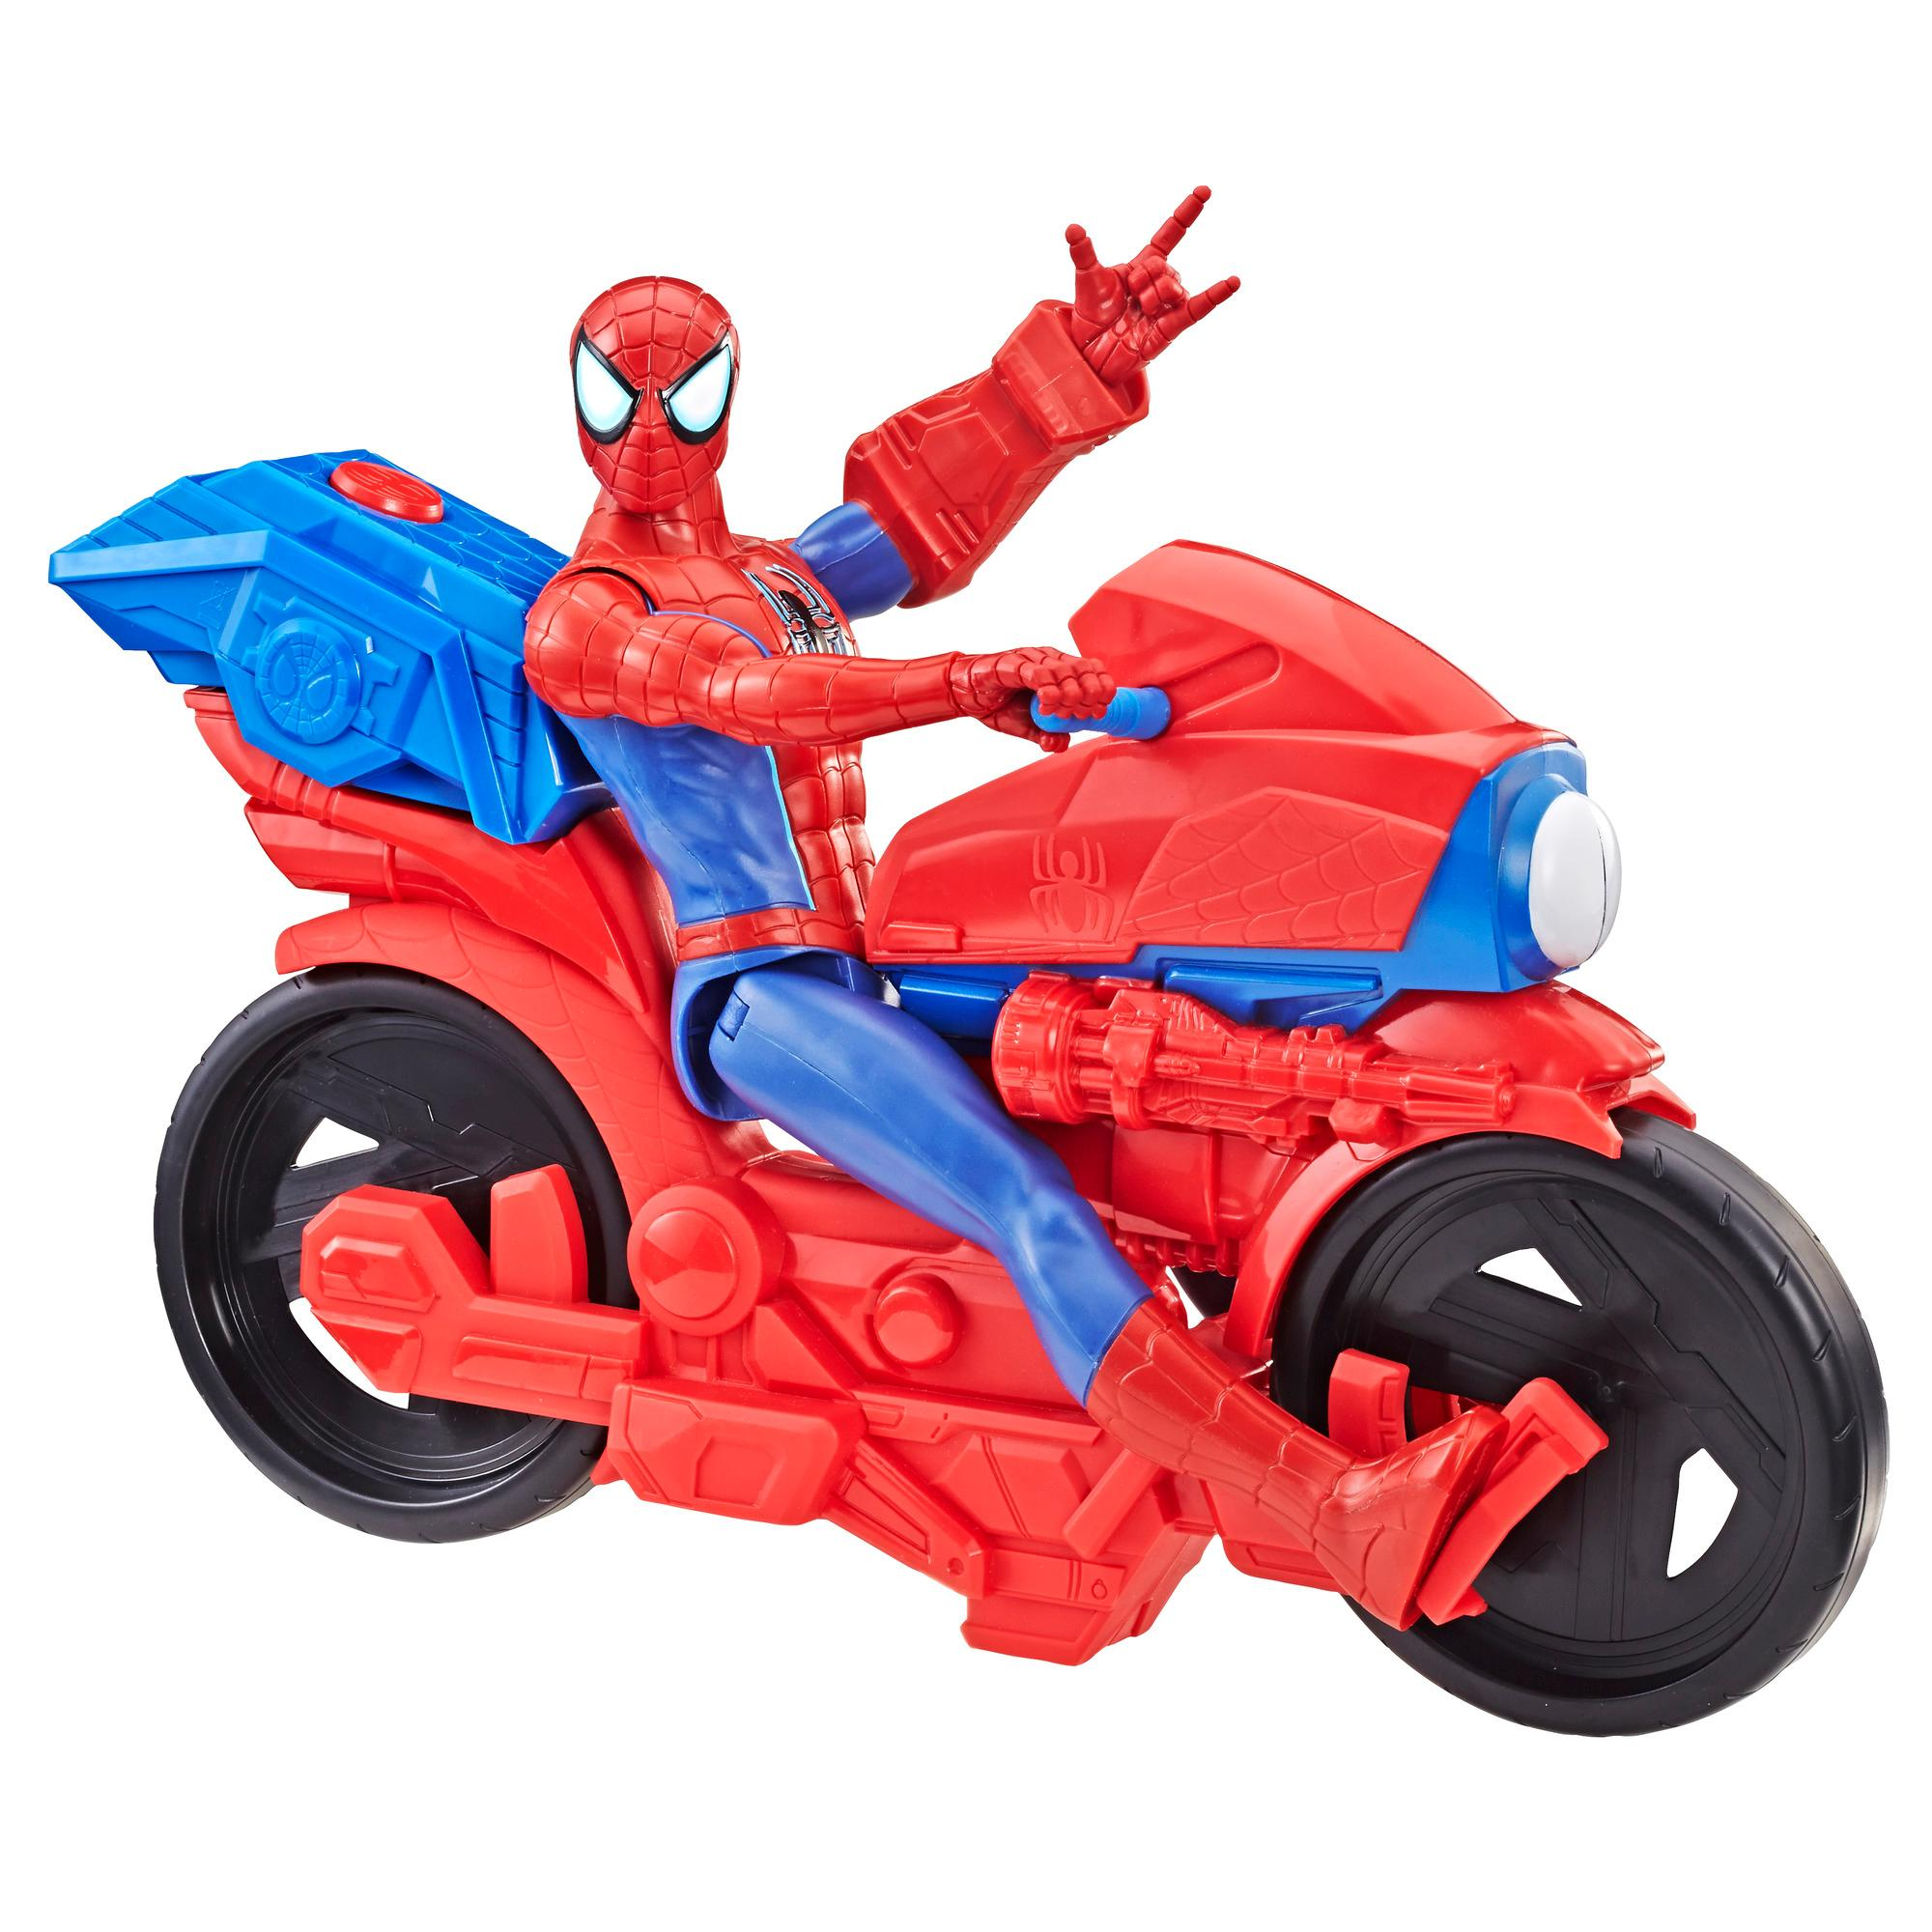 Spider-Man Titan Hero Series Spider-Man Figure with Power FX Cycle Plays Sounds and Phrases